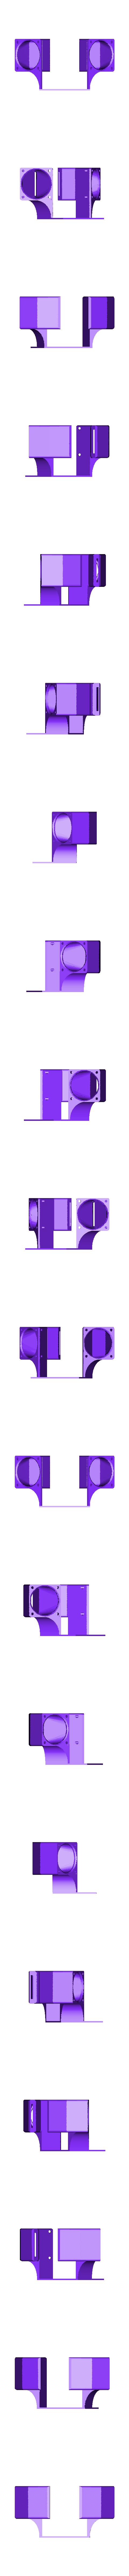 Parts_Cooling_Duct_v1.stl Download free STL file Dual 30mm Parts Cooling Duct and 40mm Heatsink Cooling Duct for E3D or v6 Clone Direct Feed or Bowden • Object to 3D print, FedorSosnin